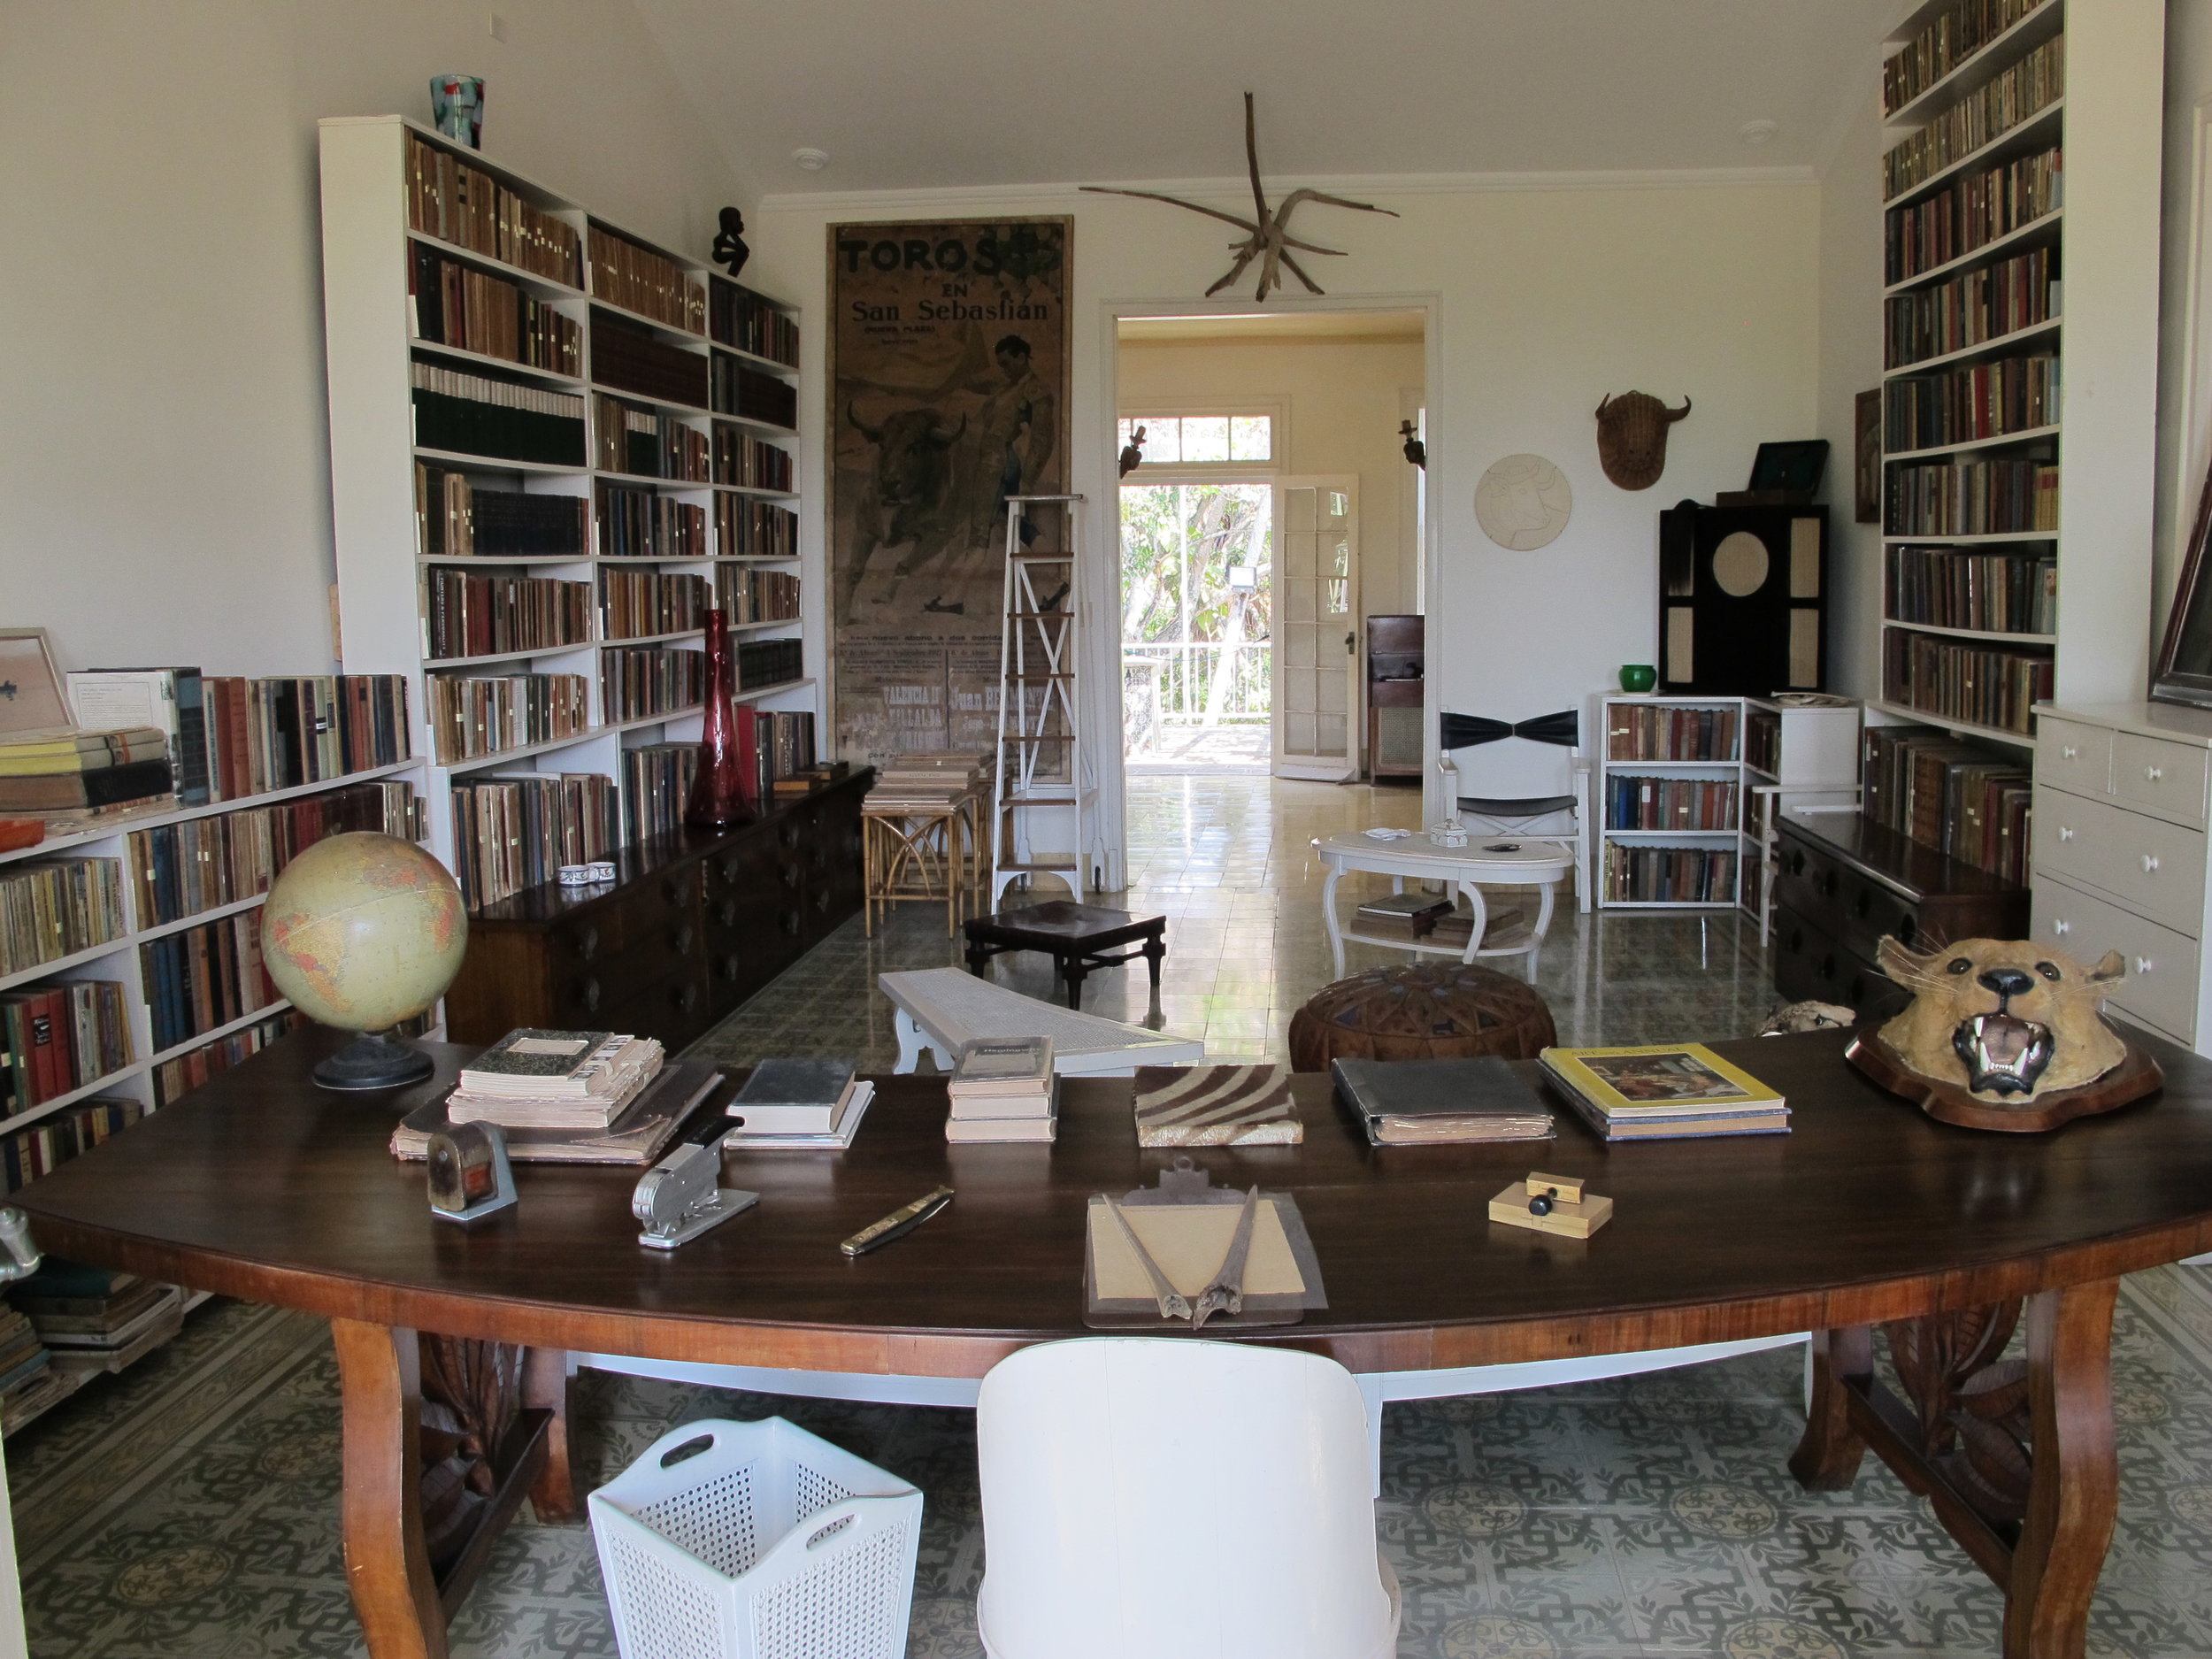 Swoon. My favorite room and image from this trek to see Hemingway's digs